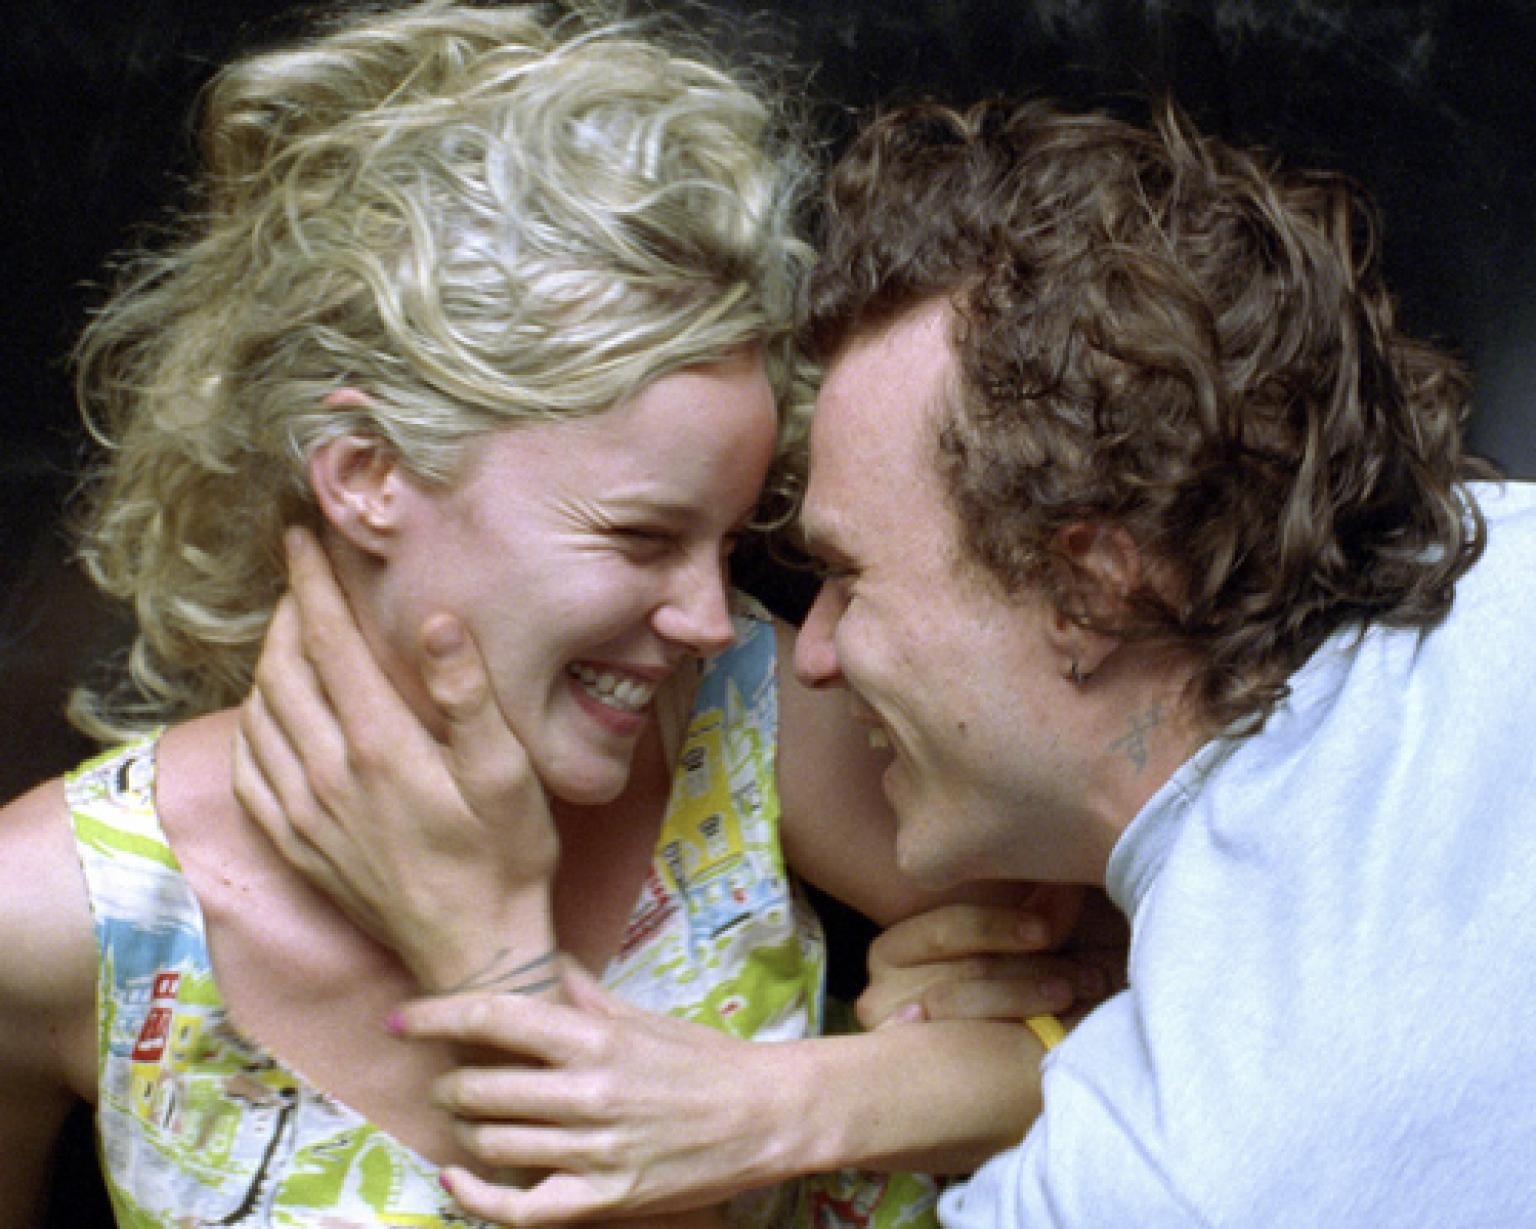 Abbie Cornish as Candy and Heath Ledger as Dan smiling at each other and in an embrace.